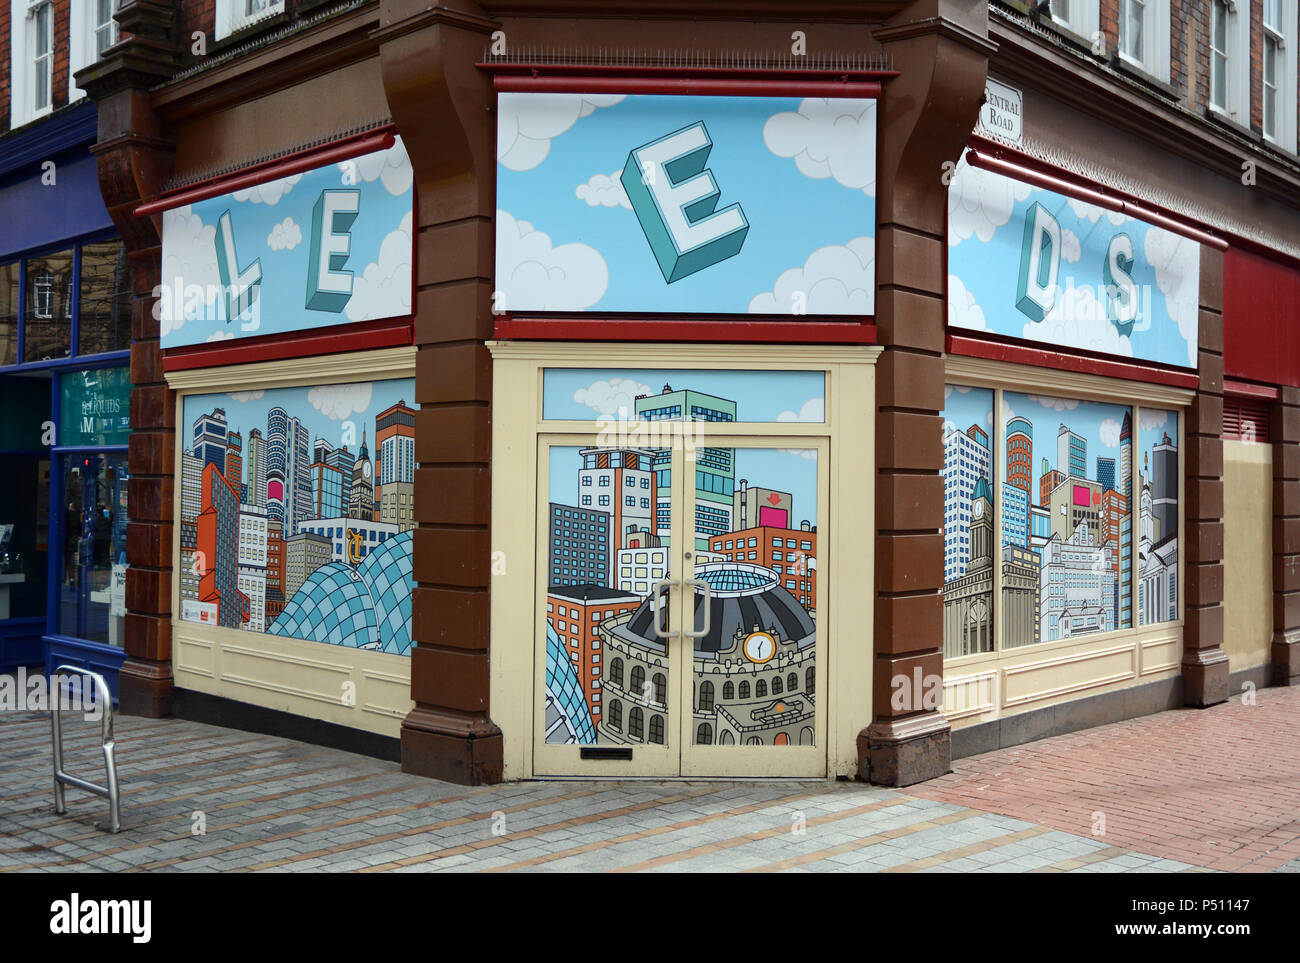 An empty storefront corner with a wallpaper illustration of the city of Leeds, in a pedestrian zone in Leeds England, United Kingdom. - Stock Image